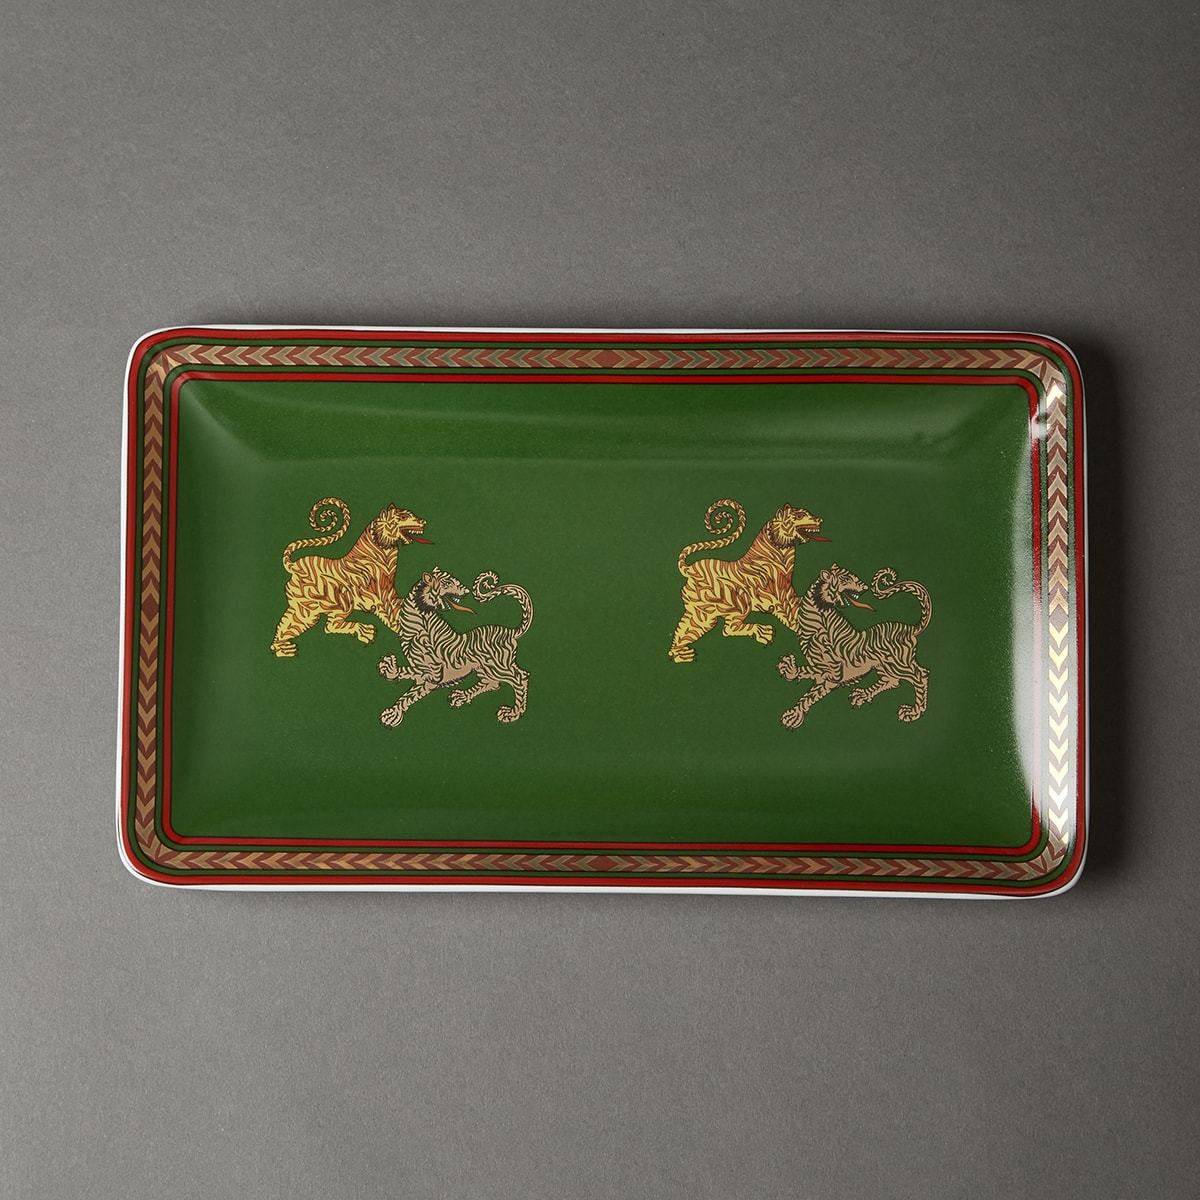 Green Baagh Serving Platter by Ritu Kumar Home - Home Artisan